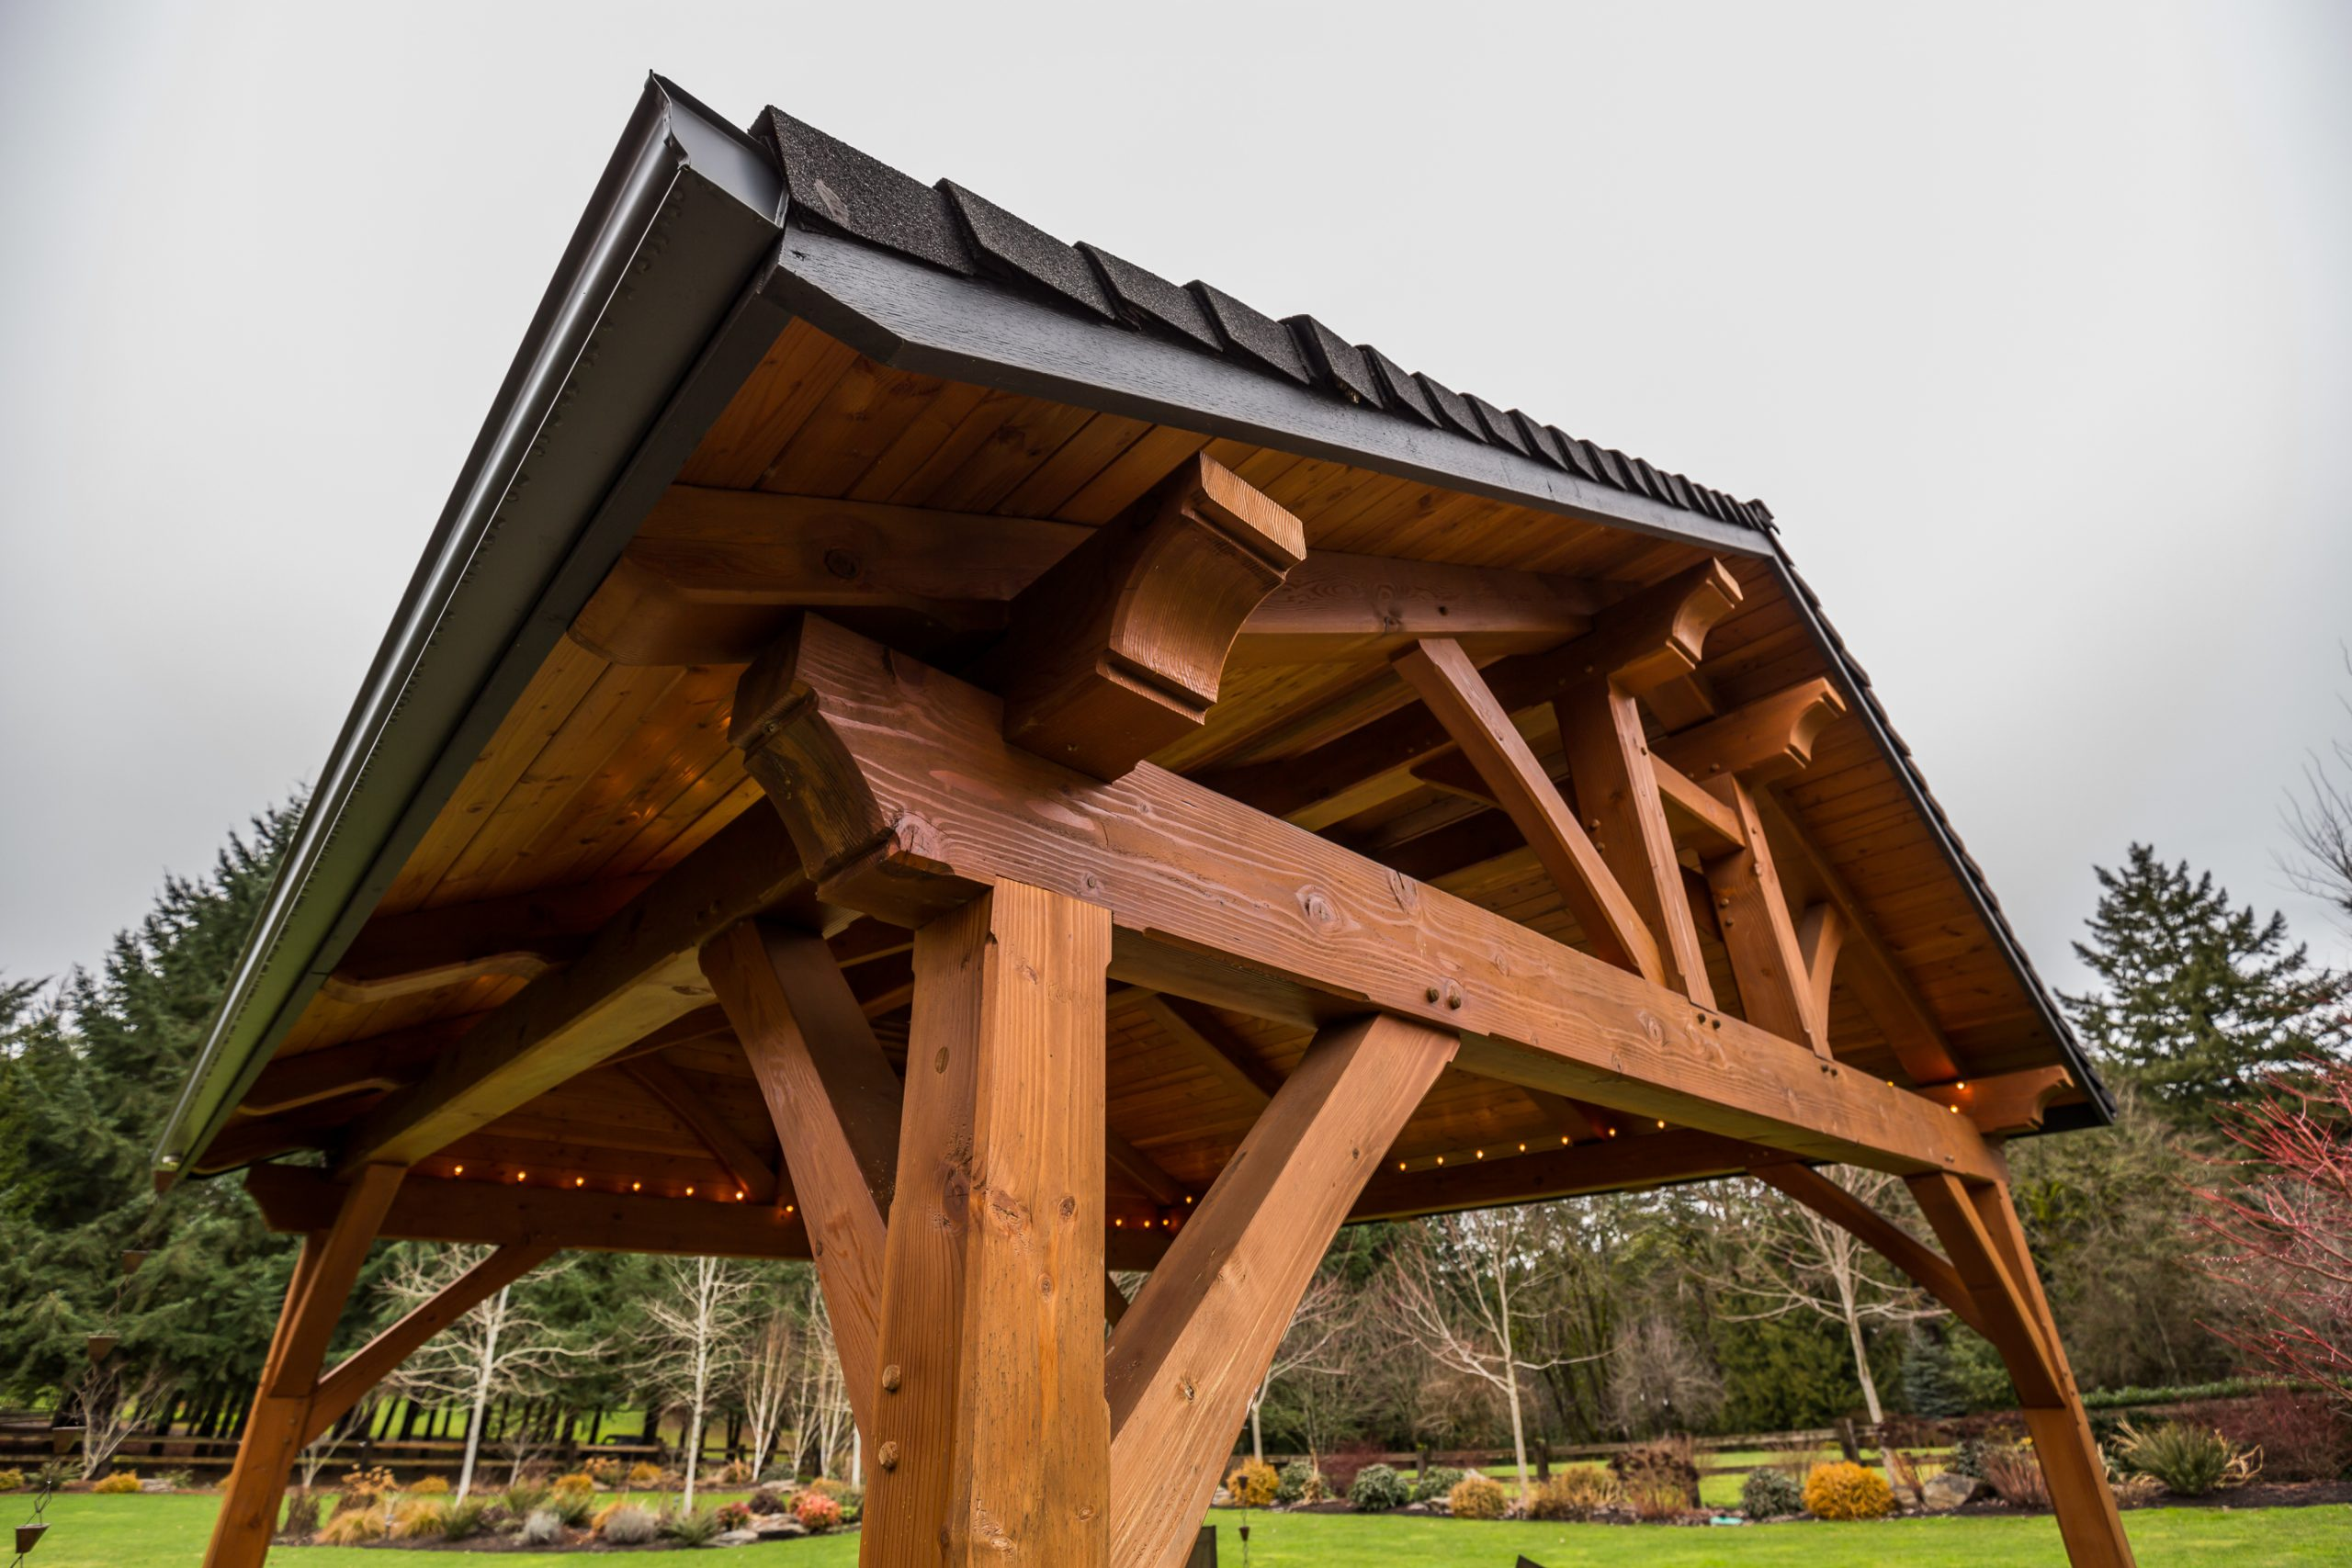 The Hogan Timber Frame in Damascus, OR